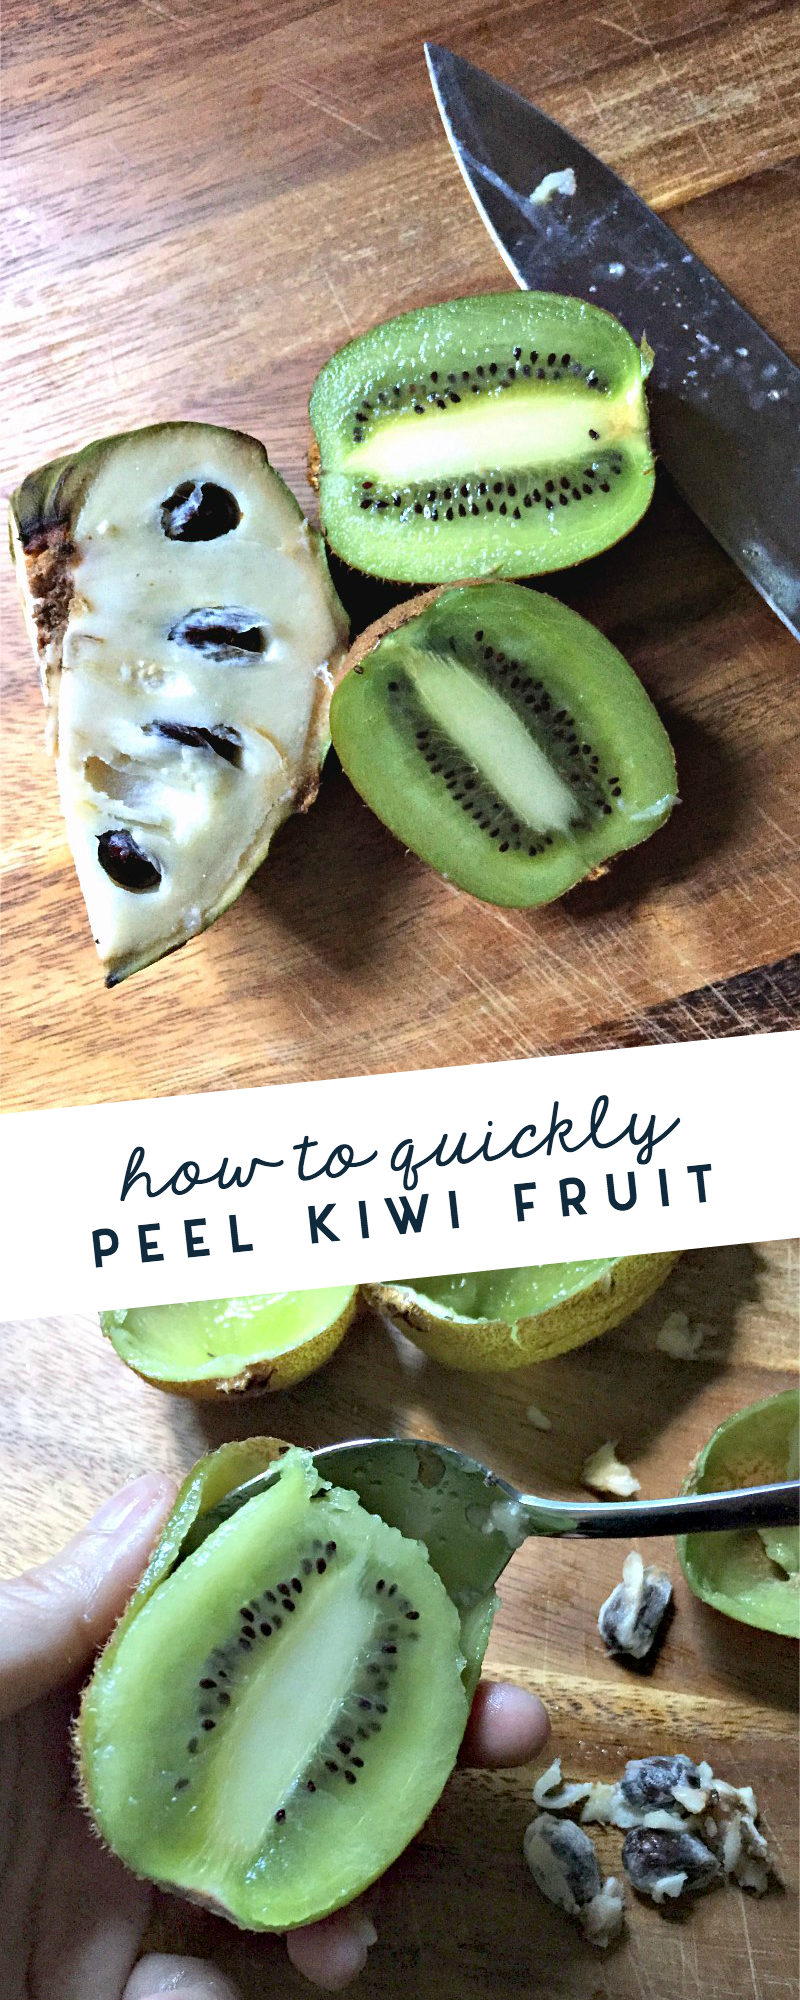 Genius! How to quickly peel kiwi fruit using this simple technique. Plus some new ideas for how and where to use this delicious green fruit.